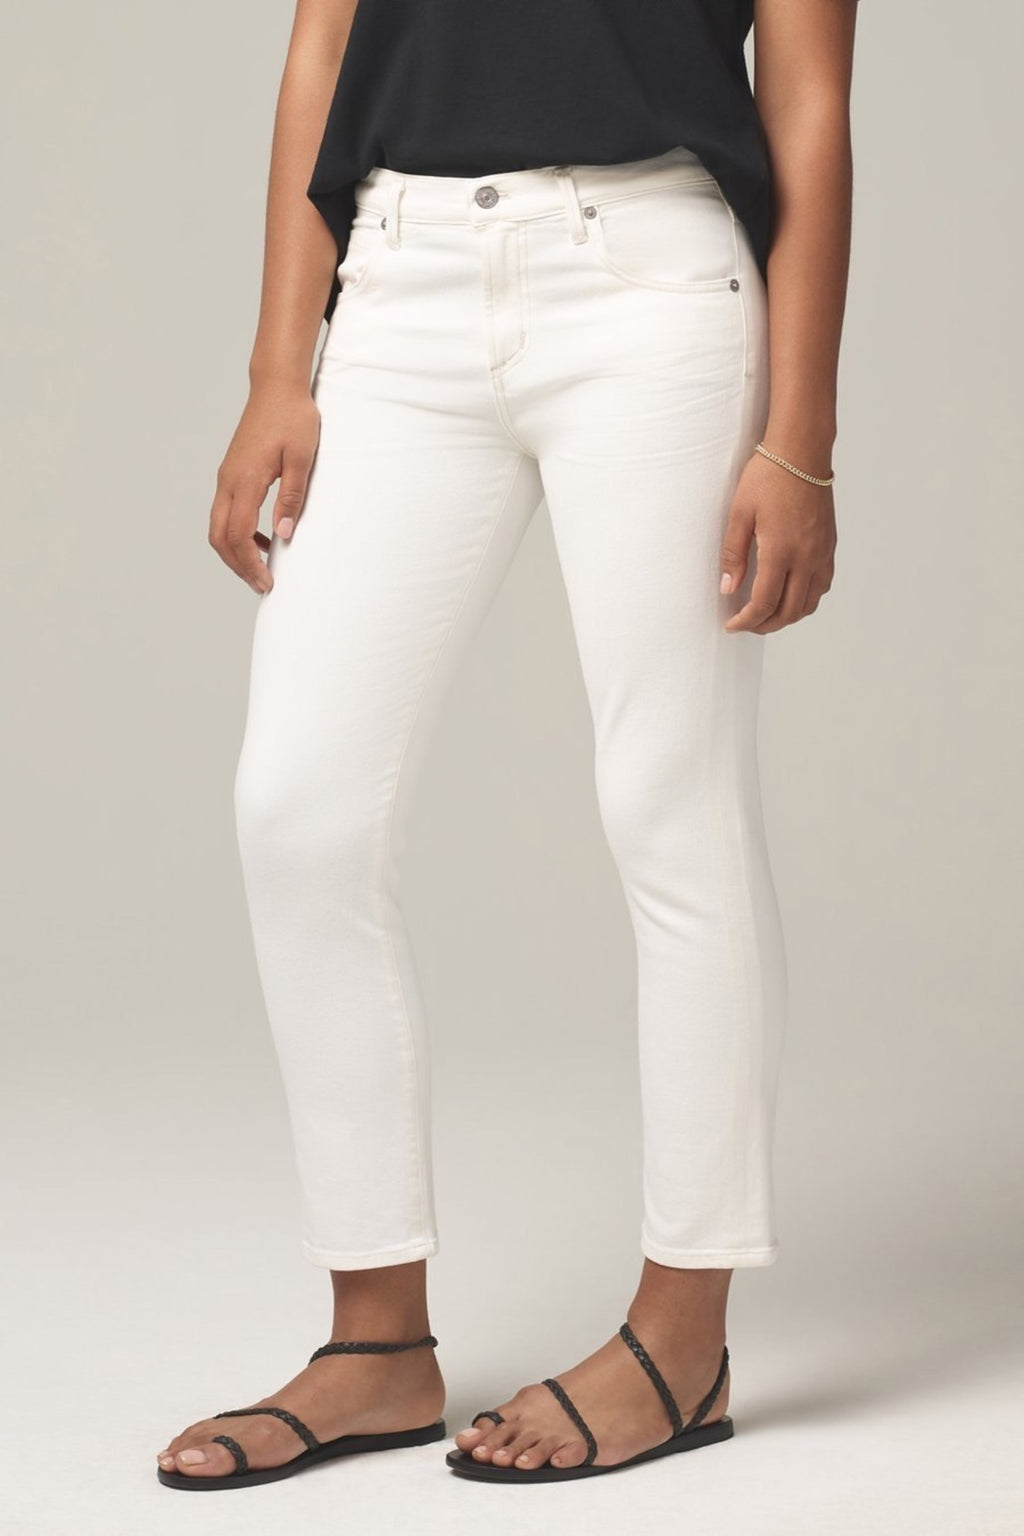 Citizen's of Humanity Elsa Mid Rise Slim Fit Crop